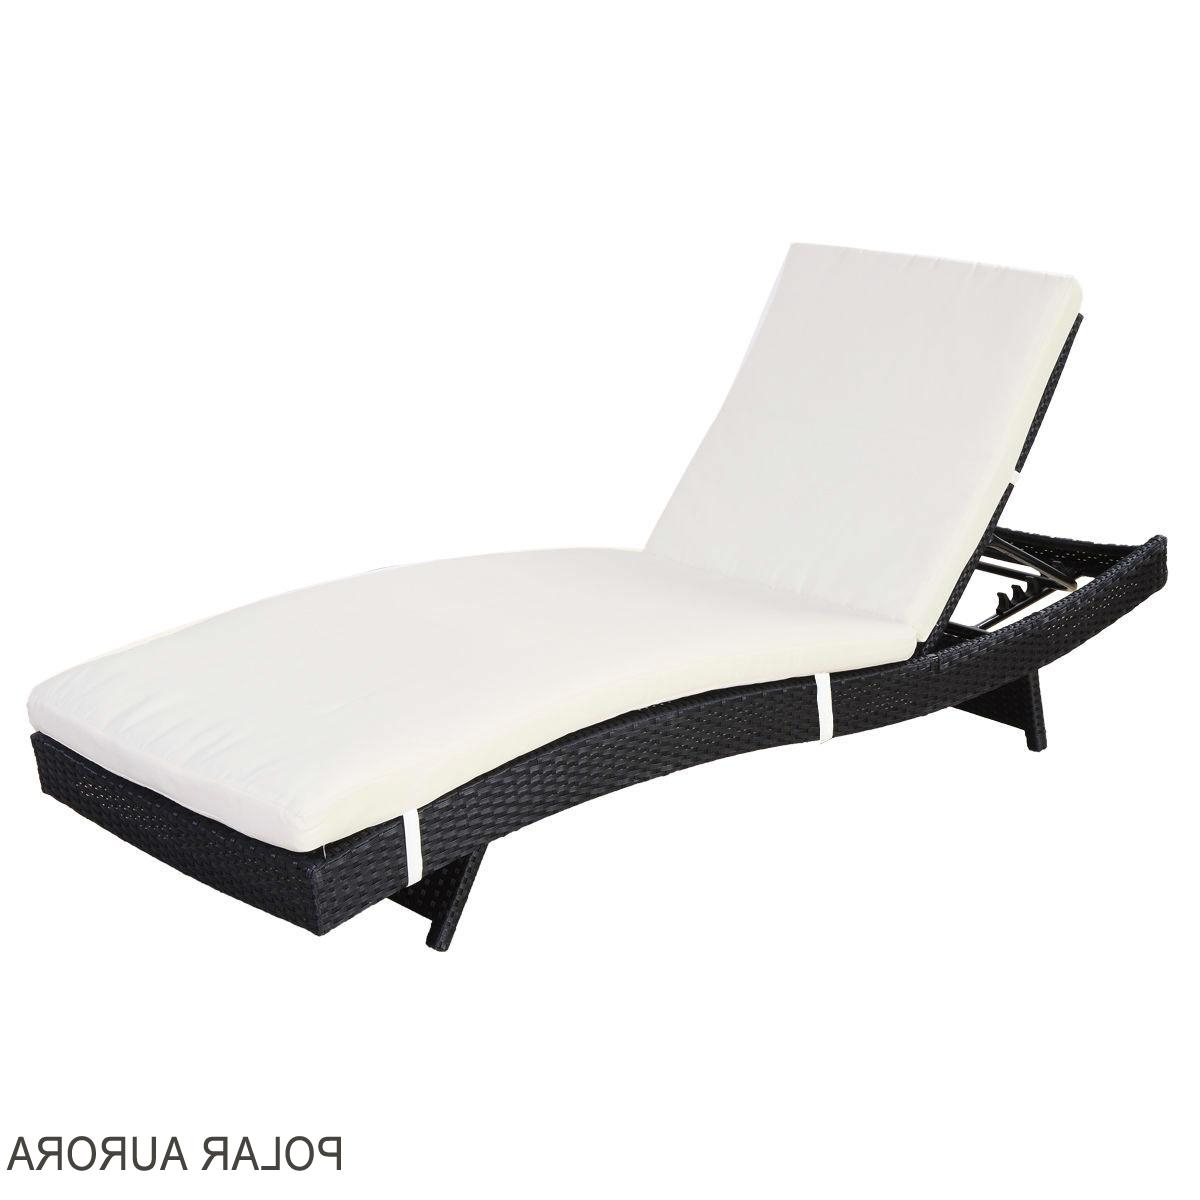 Most Current Outdoor Adjustable Rattan Wicker Chaise Pool Chairs With Cushions Inside Polar Aurora Adjustable Rattan Wicker Chaise Lounge Chair (View 11 of 25)